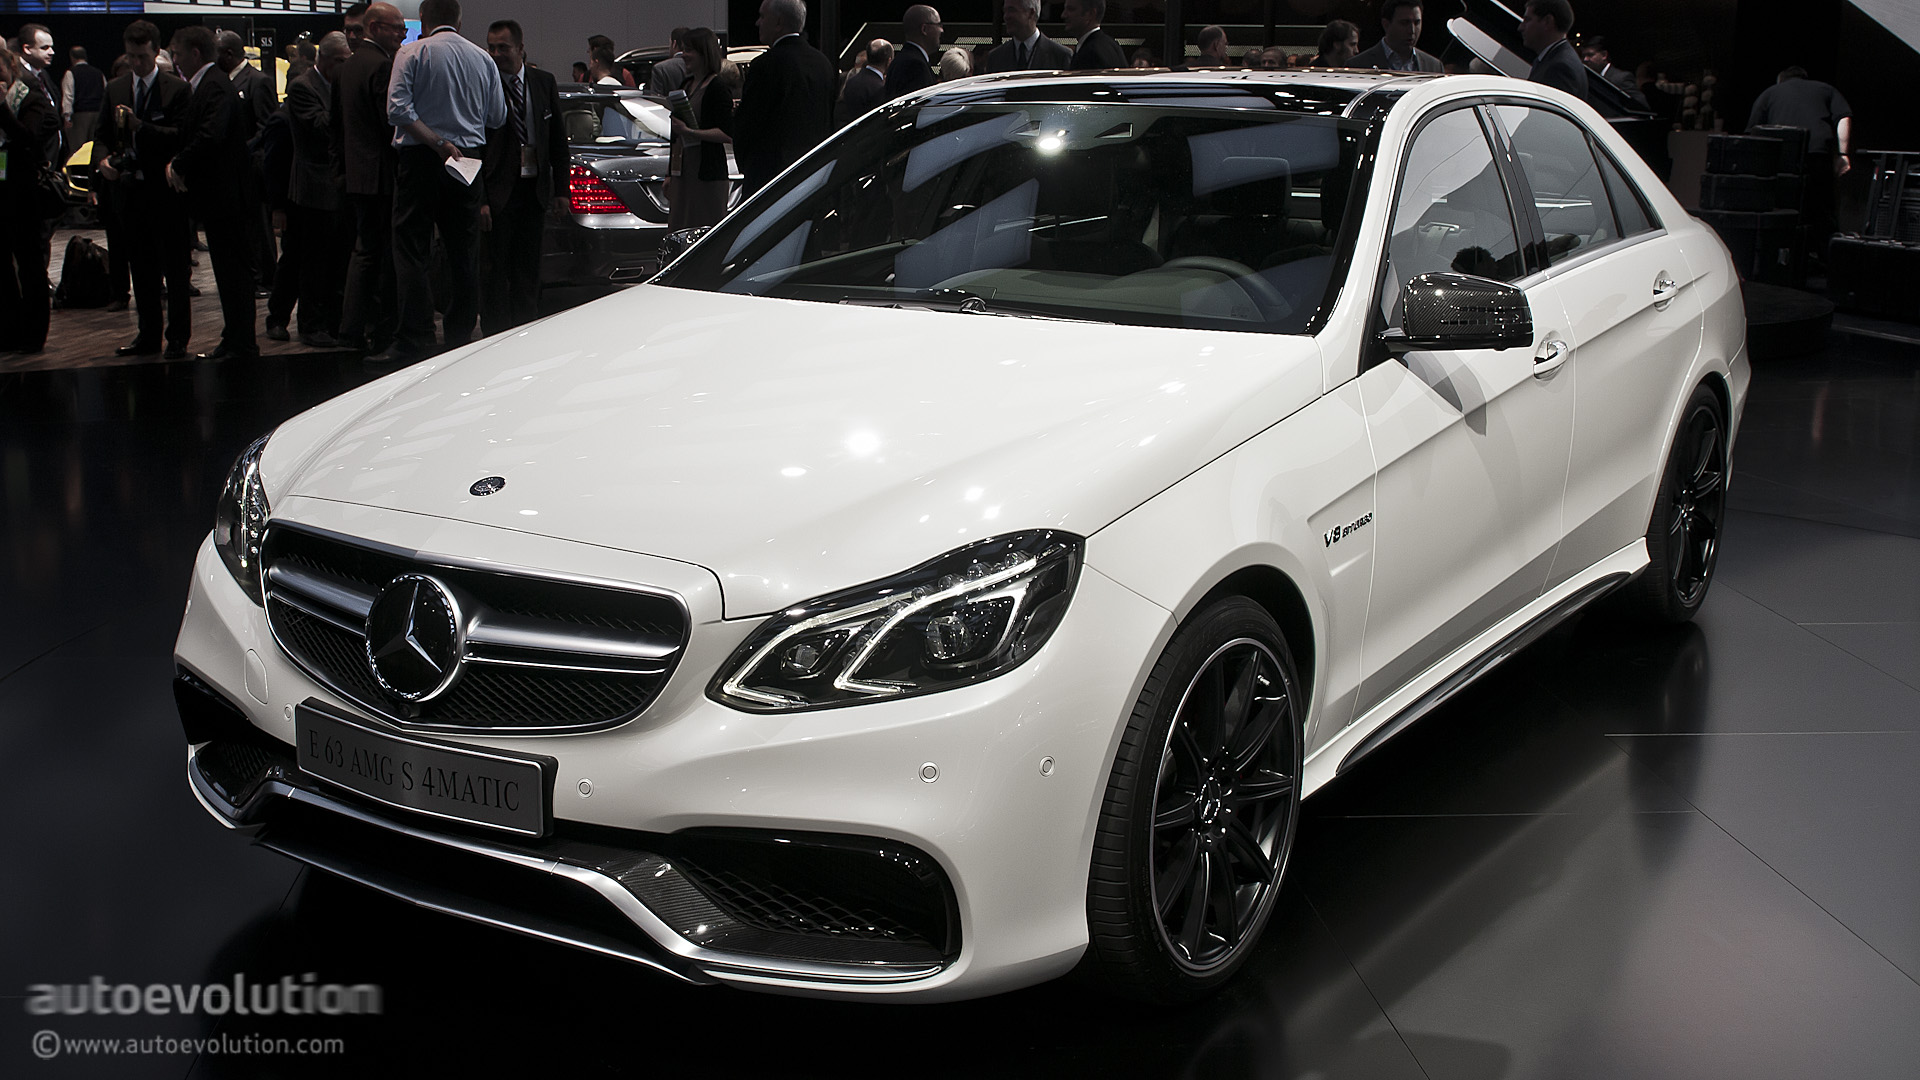 2013 naias mercedes benz e63 amg s 4matic live photos autoevolution. Black Bedroom Furniture Sets. Home Design Ideas